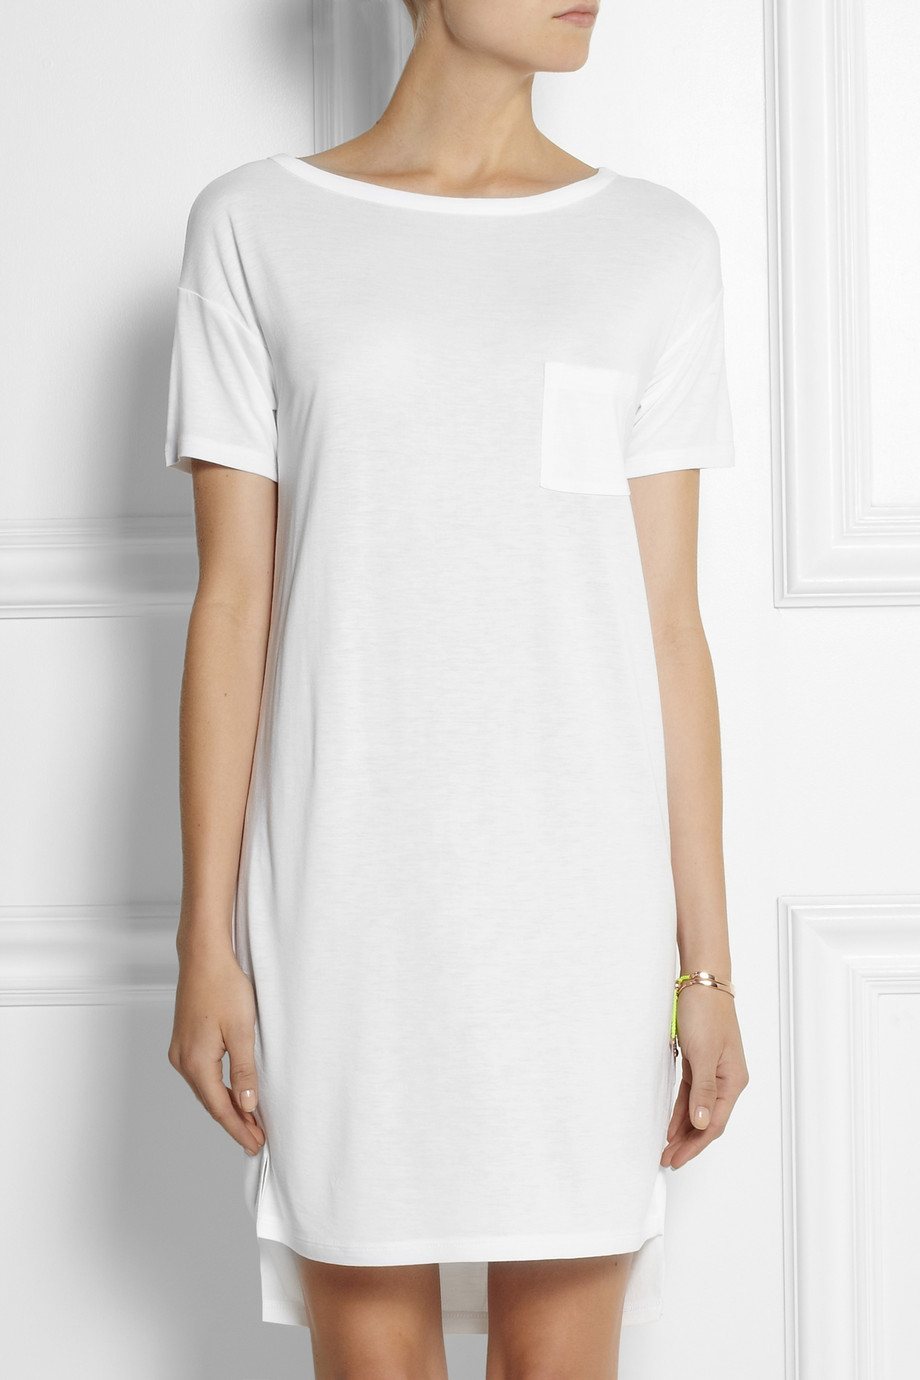 T by alexander wang jersey t shirt dress in white lyst for Dressy white t shirt